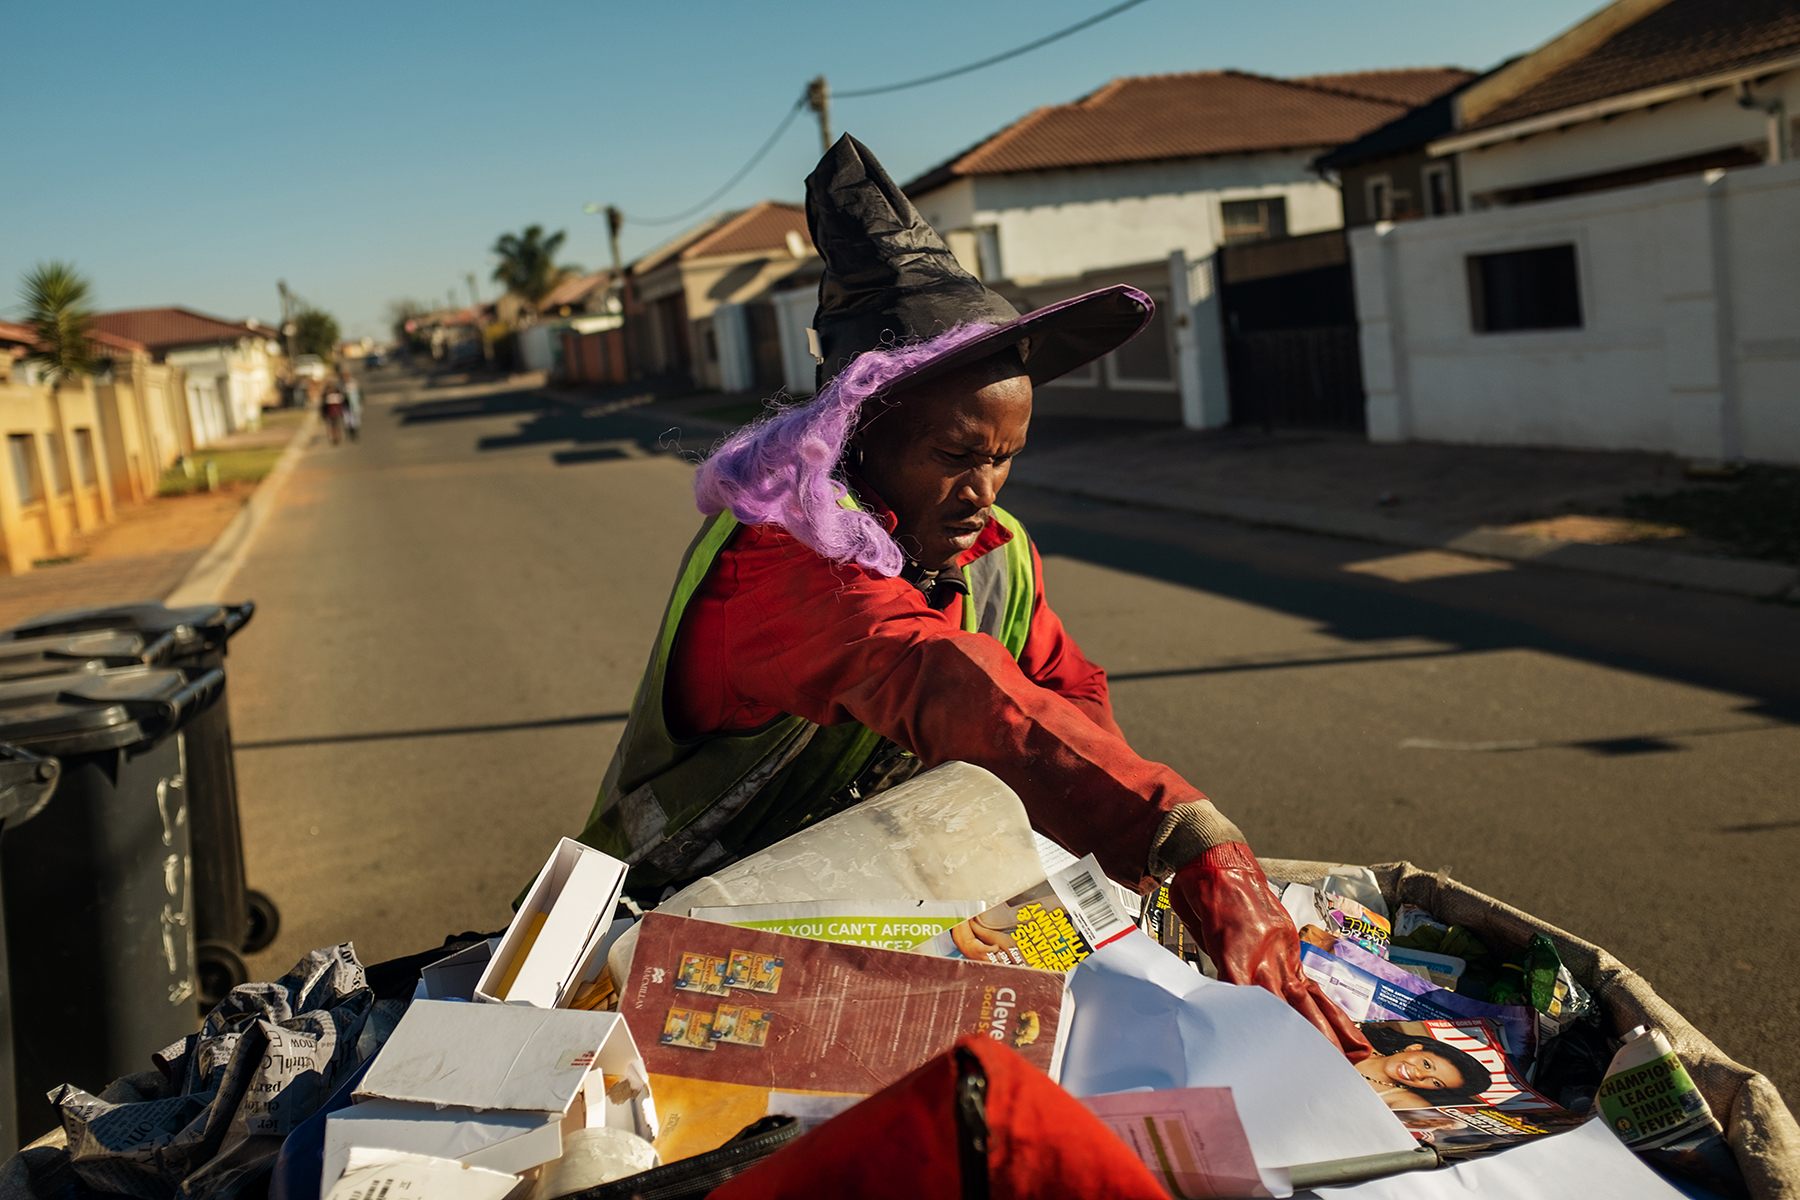 Tumelo Ikaneng, 21, separates waste collected from trash bins in the early morning of June 12, 2019 in Johannebsurg, South Africa.